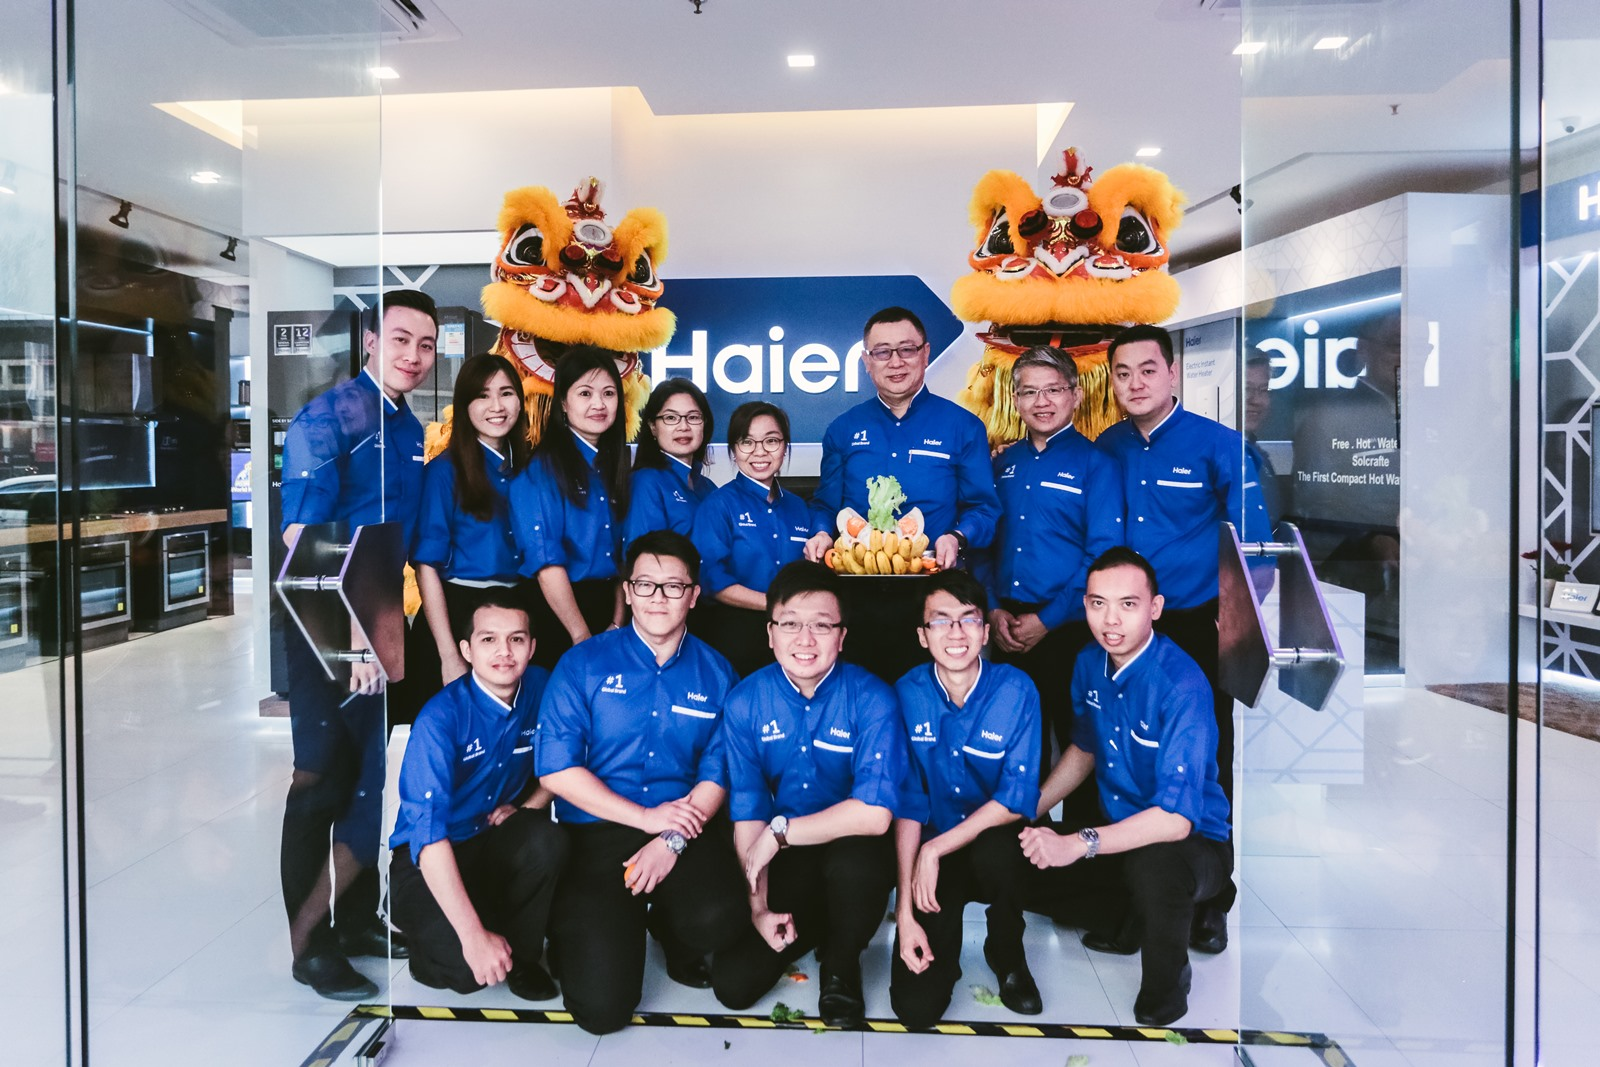 Mr Shi Zhiyuan, Managing Director of Haier (3rd from right) together with the management team opens the doors of the Haier Experience Centre in SetiaWalk, Puchong to the public.